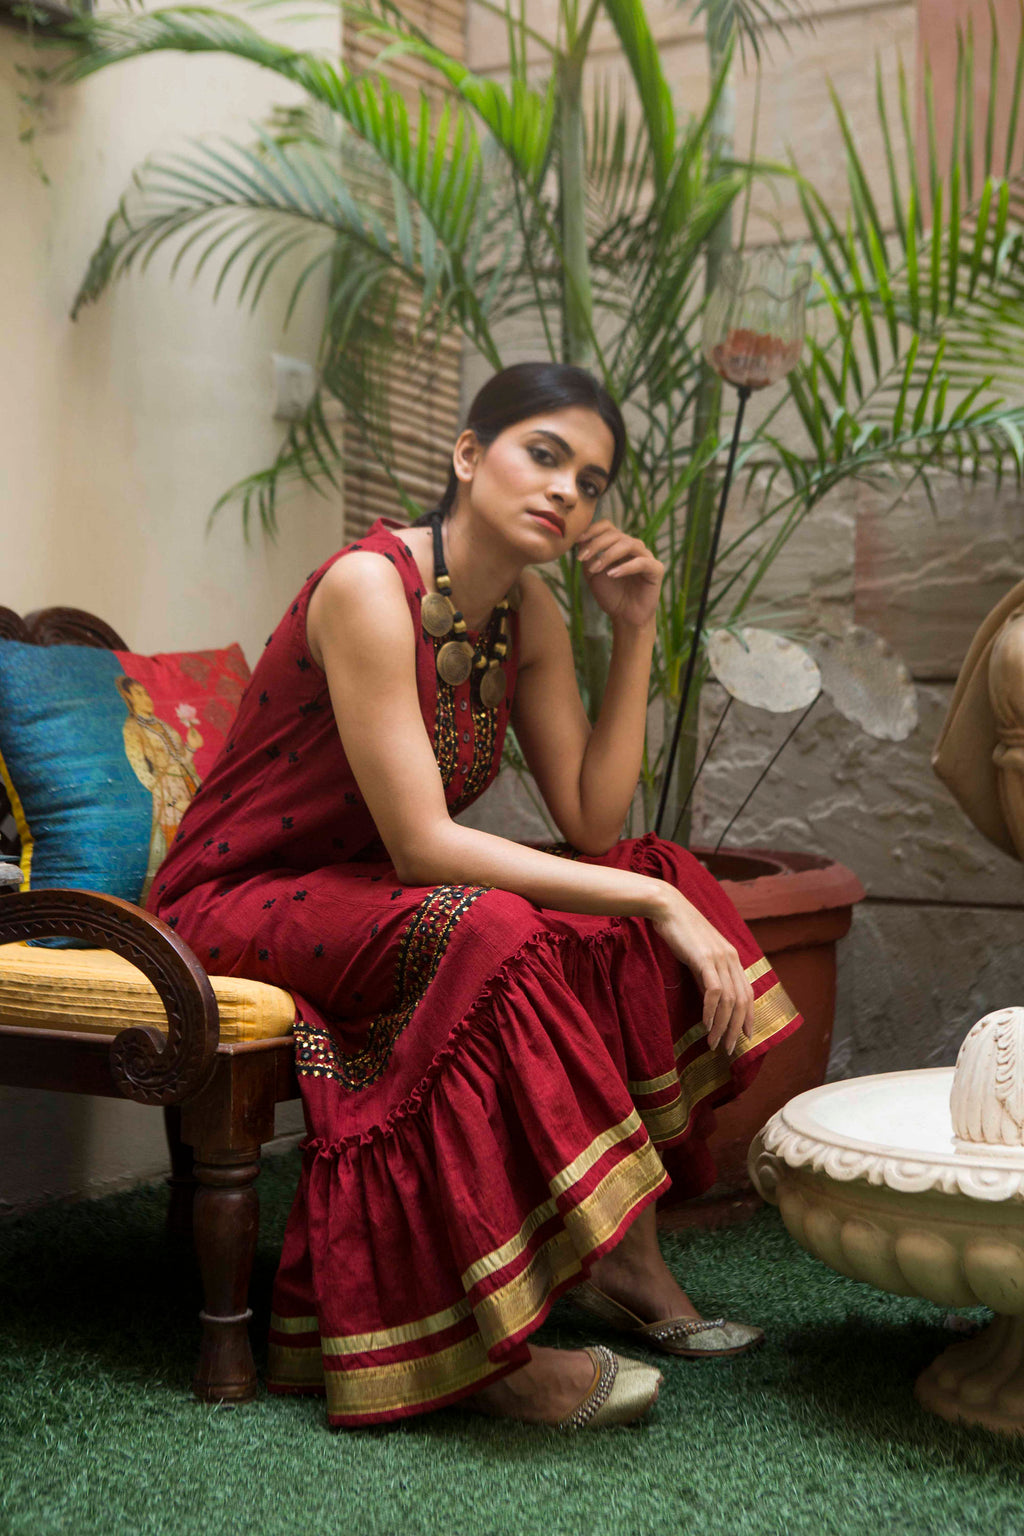 Jacqueline Festive dress in hand embroidered khadi cotton